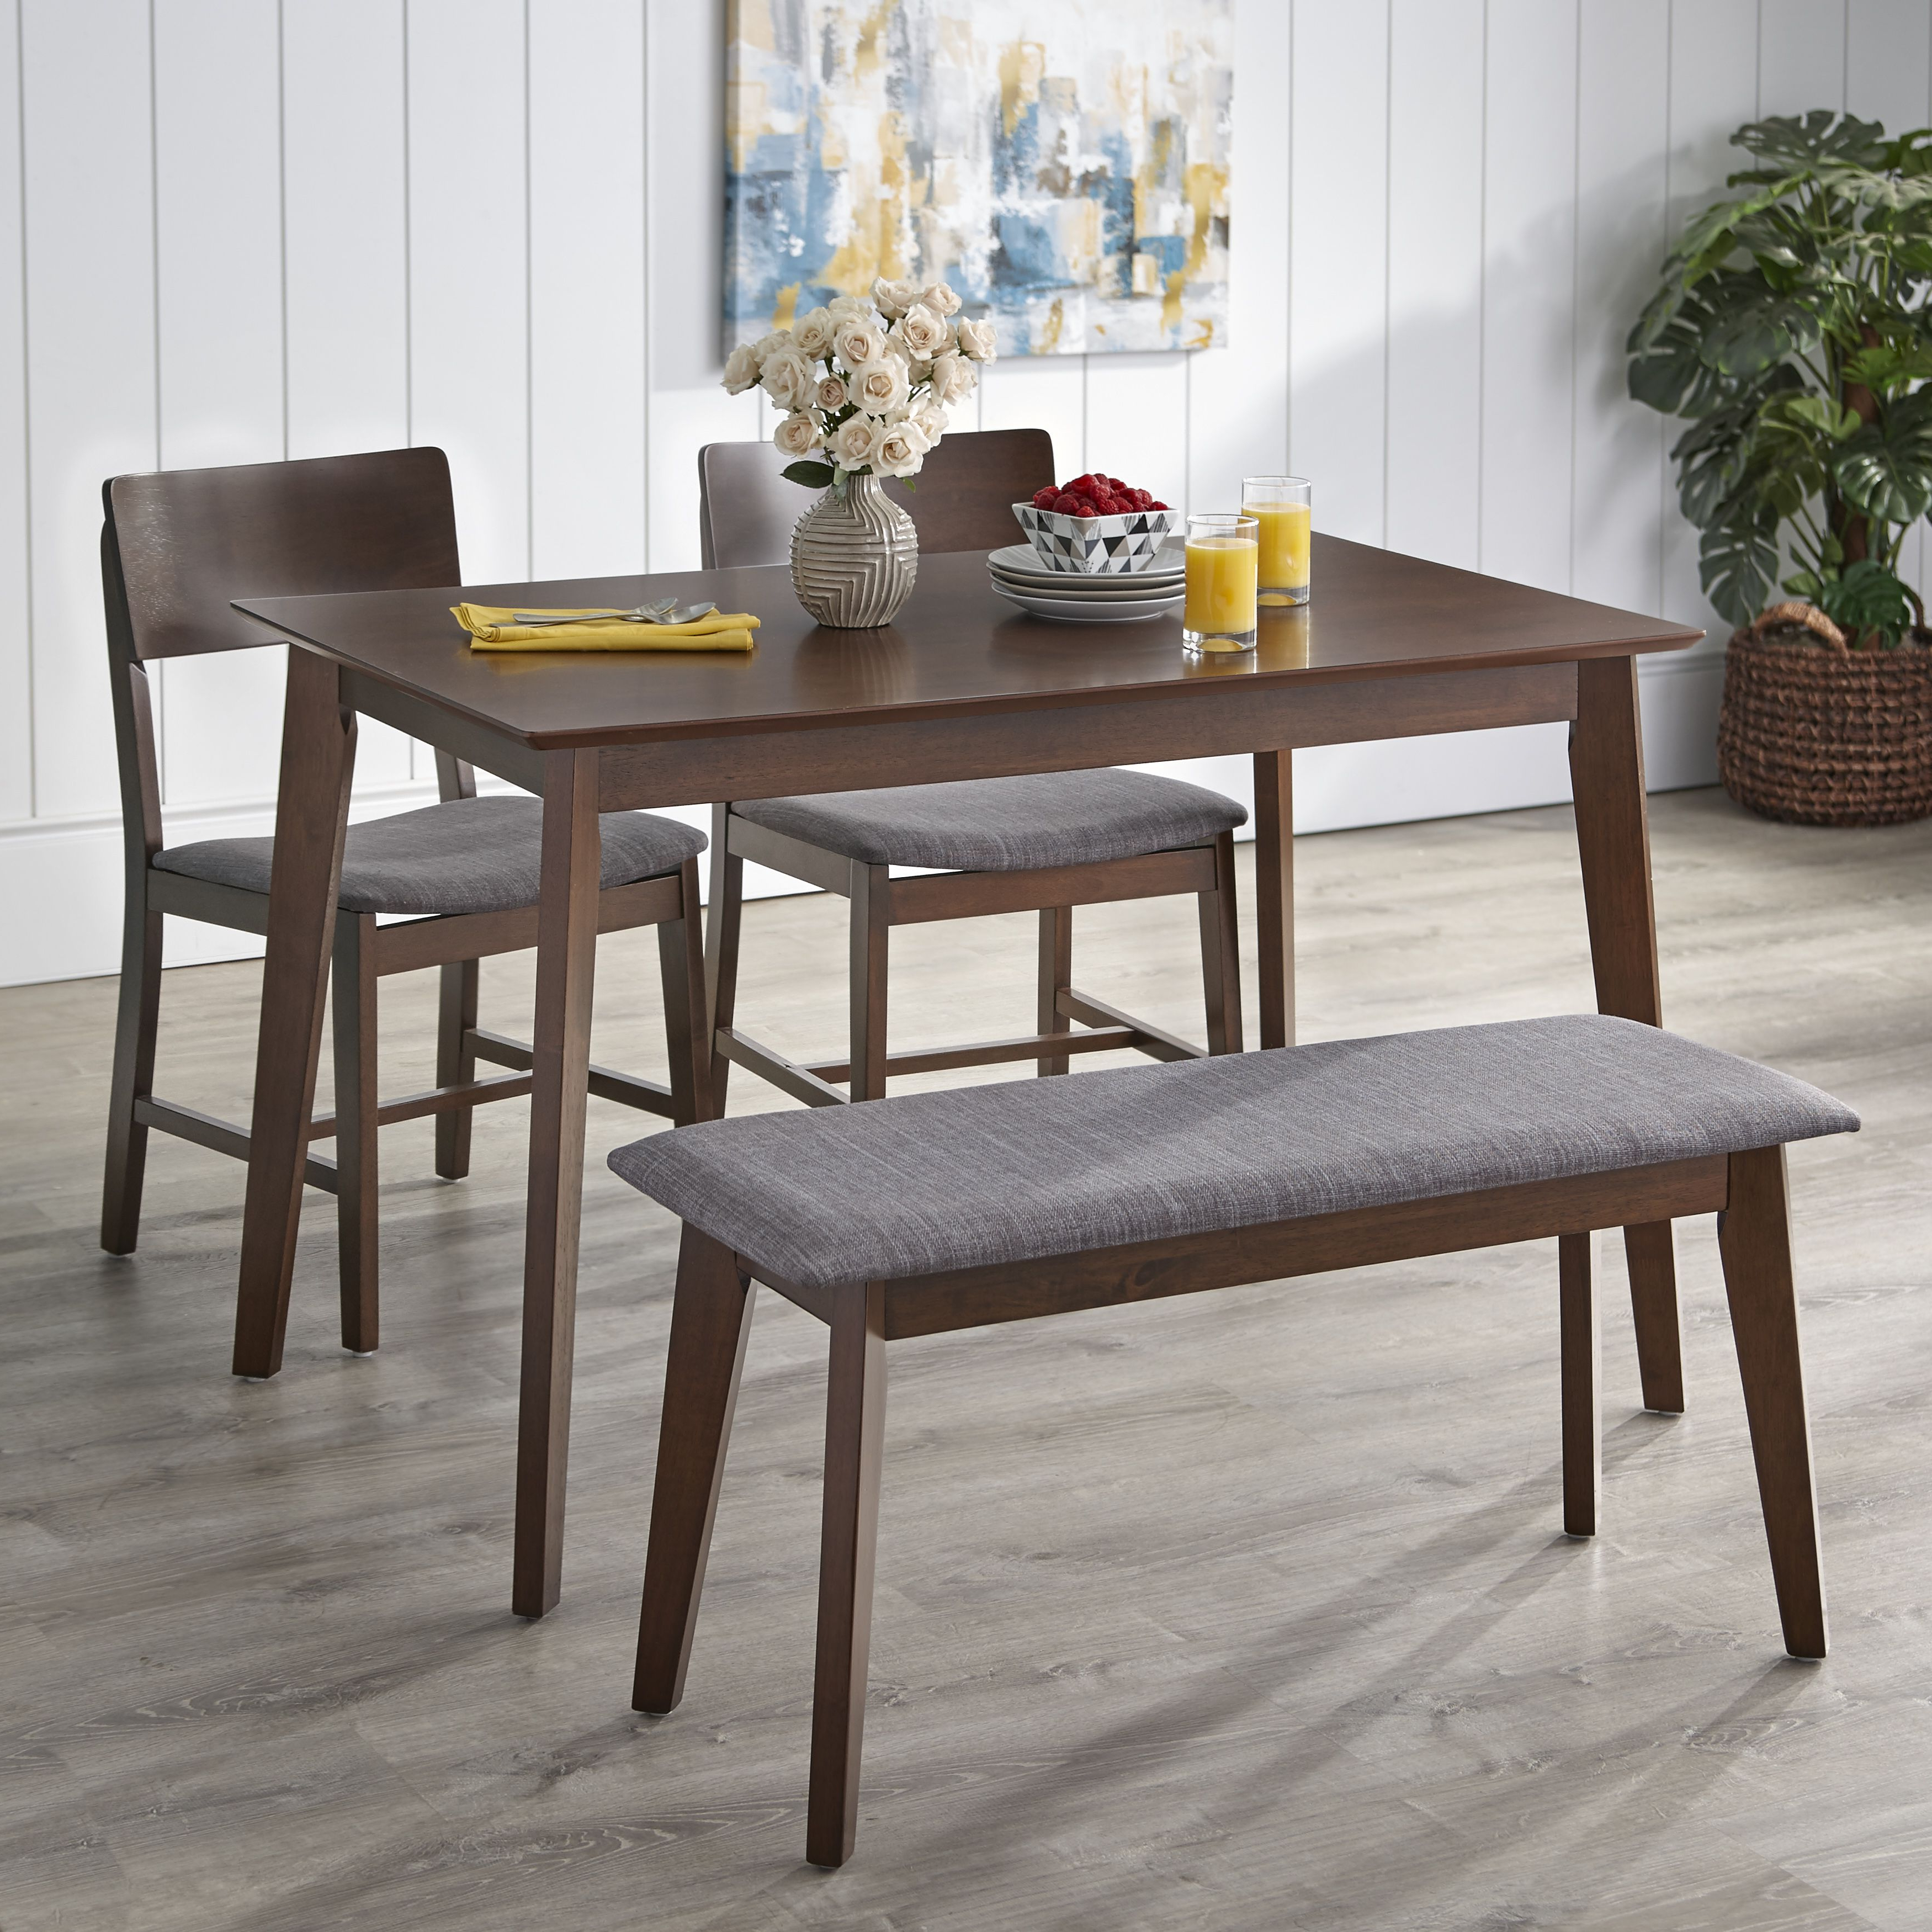 Well Liked Tms Tiara 4 Piece Dining Set With Bench, Multiple Colors#piece For Rossiter 3 Piece Dining Sets (View 23 of 25)